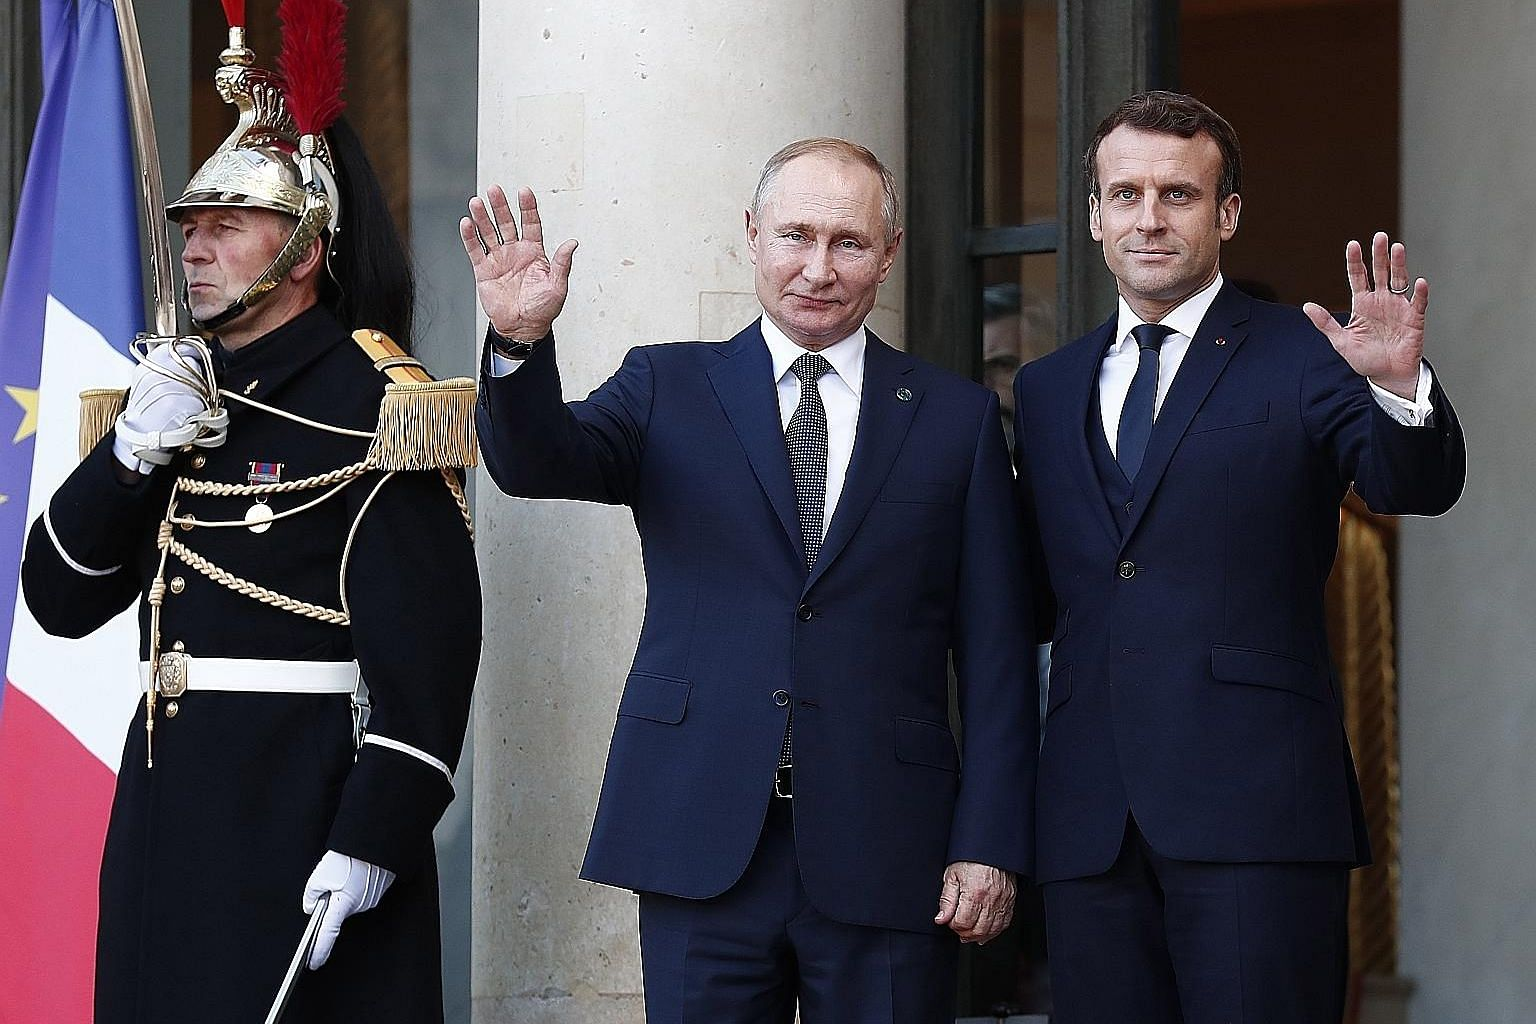 French President Emmanuel Macron greeting Russian President Vladimir Putin as he arrives for the summit on Ukraine at the Elysee Palace in Paris yesterday. Also attending the summit are German and Ukrainian leaders.